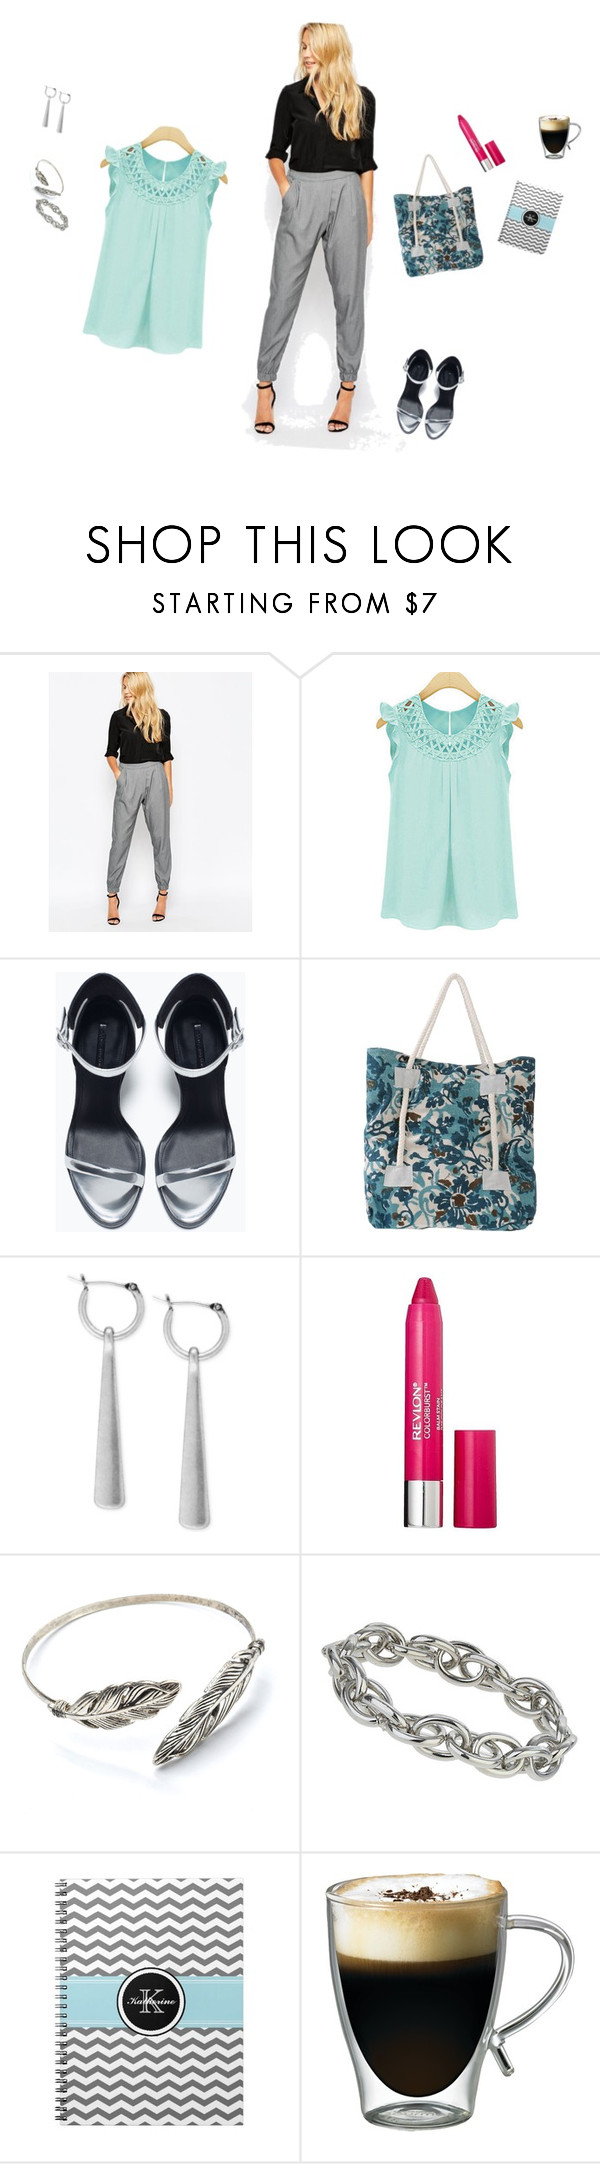 Monday's office look... by missy35000 on Polyvore featuring Glamorous, Zara, CAFèNOIR, Lucky Brand, Topshop, Revlon and Starfrit